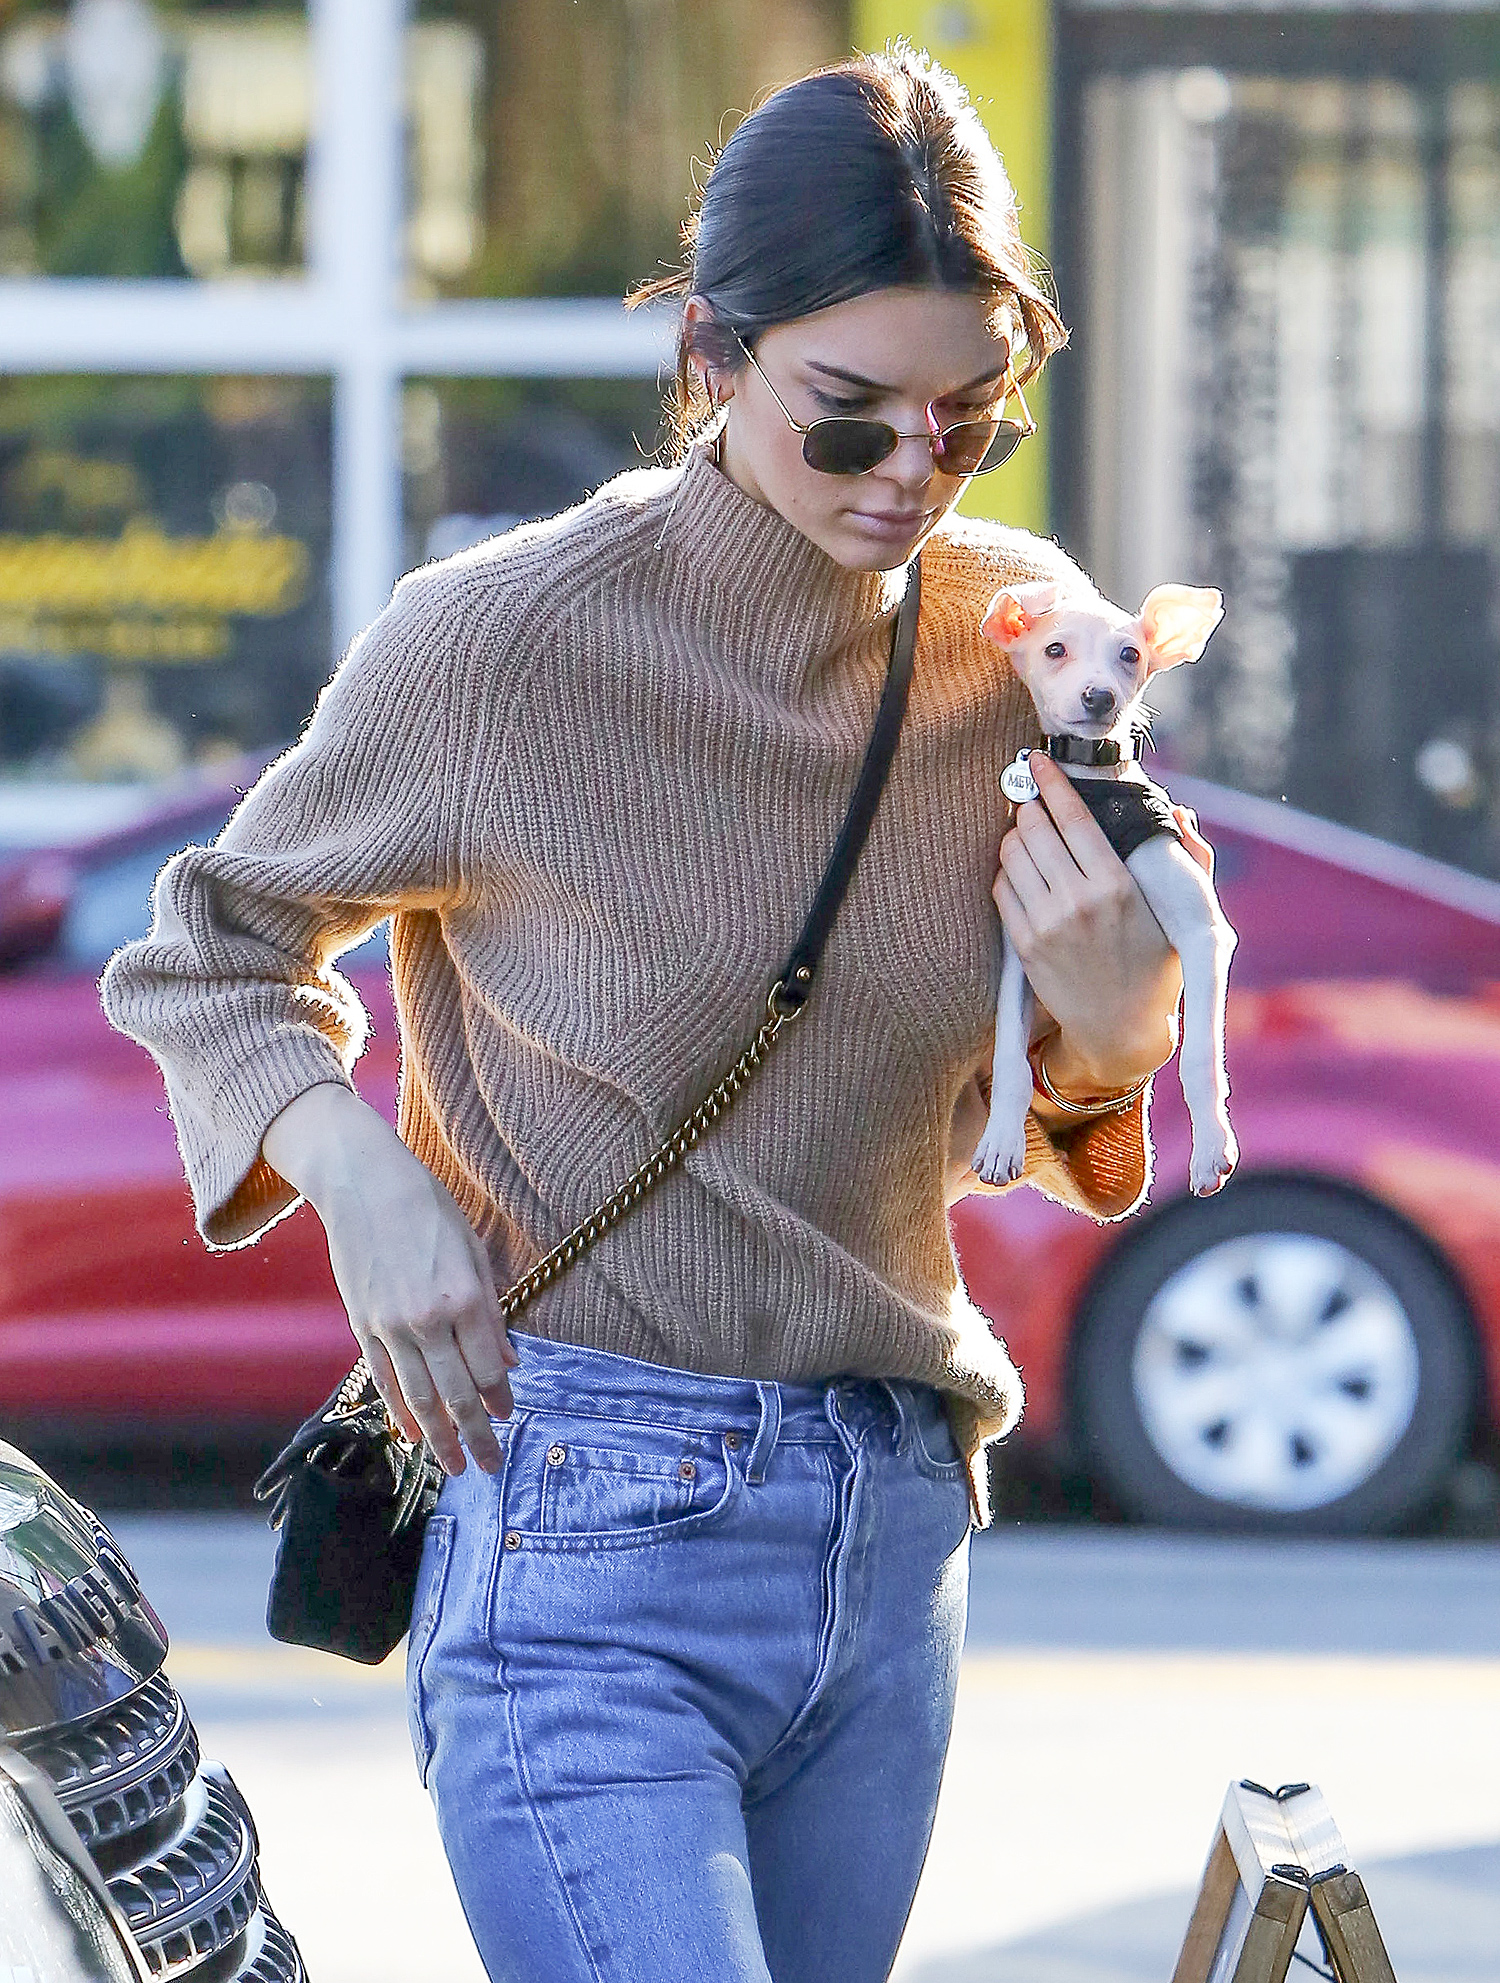 *EXCLUSIVE* Kendall Jenner brings her puppy to lunch